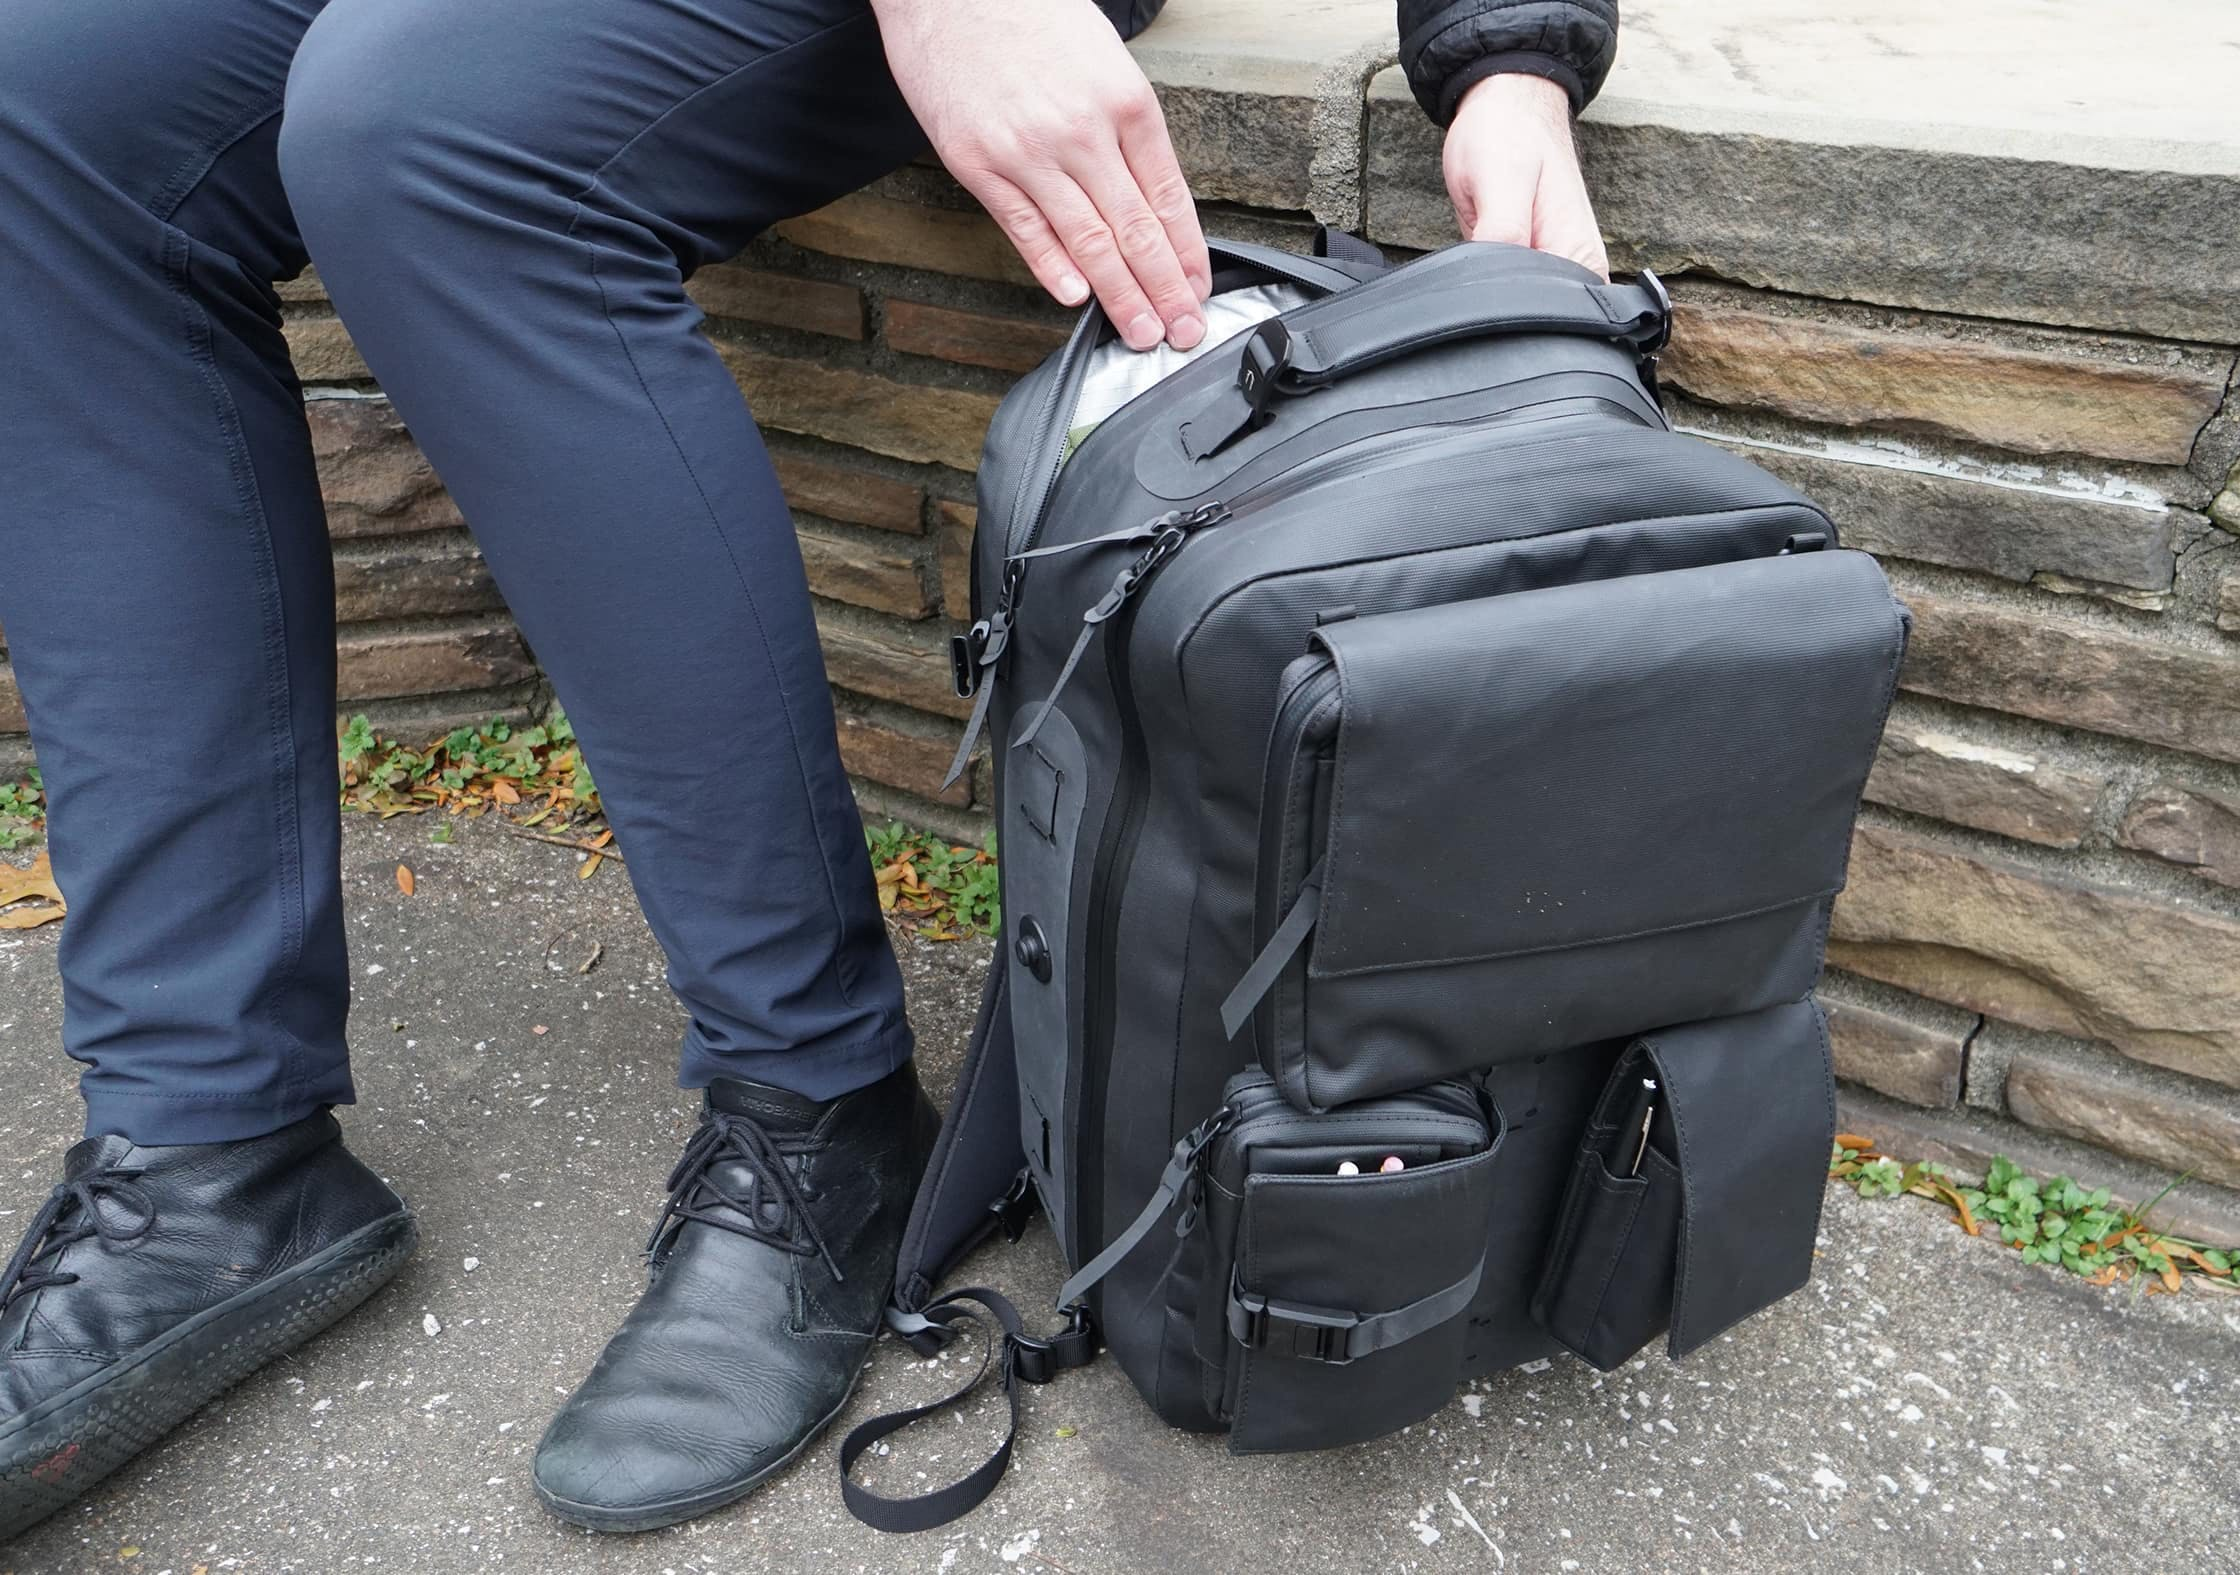 Black Ember Citadel Modular Backpack In Use